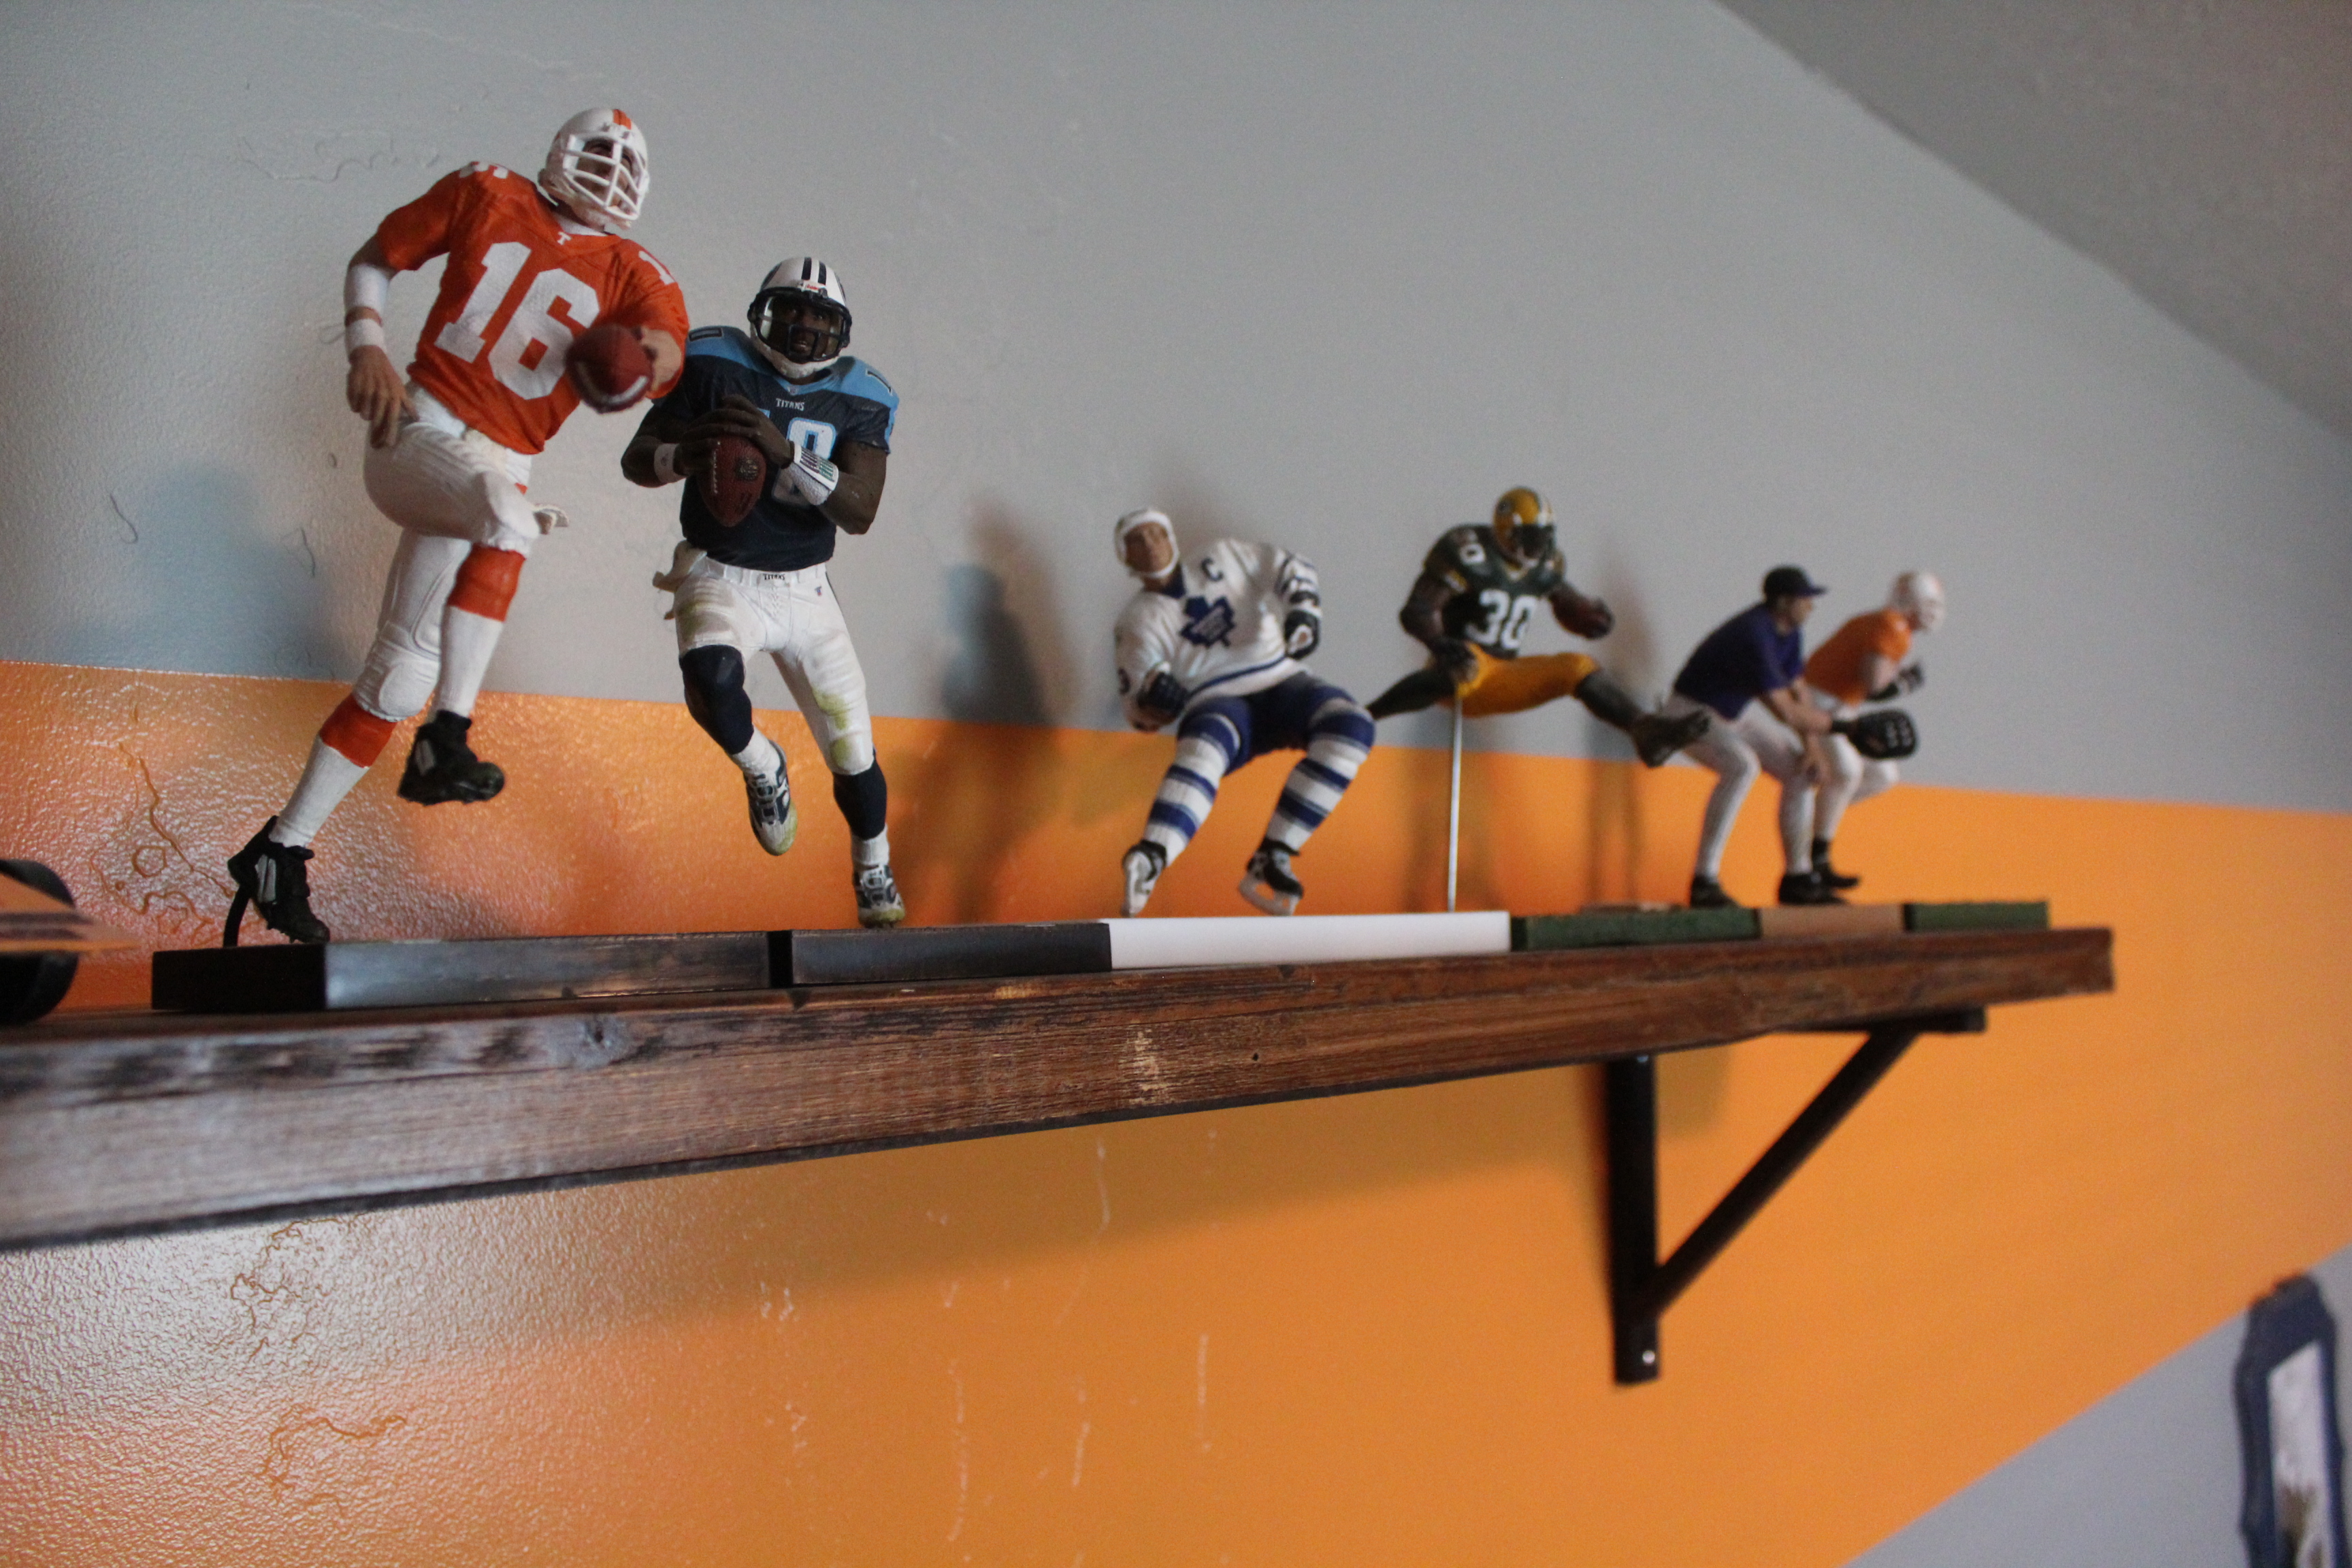 Rustic Sports Shelf